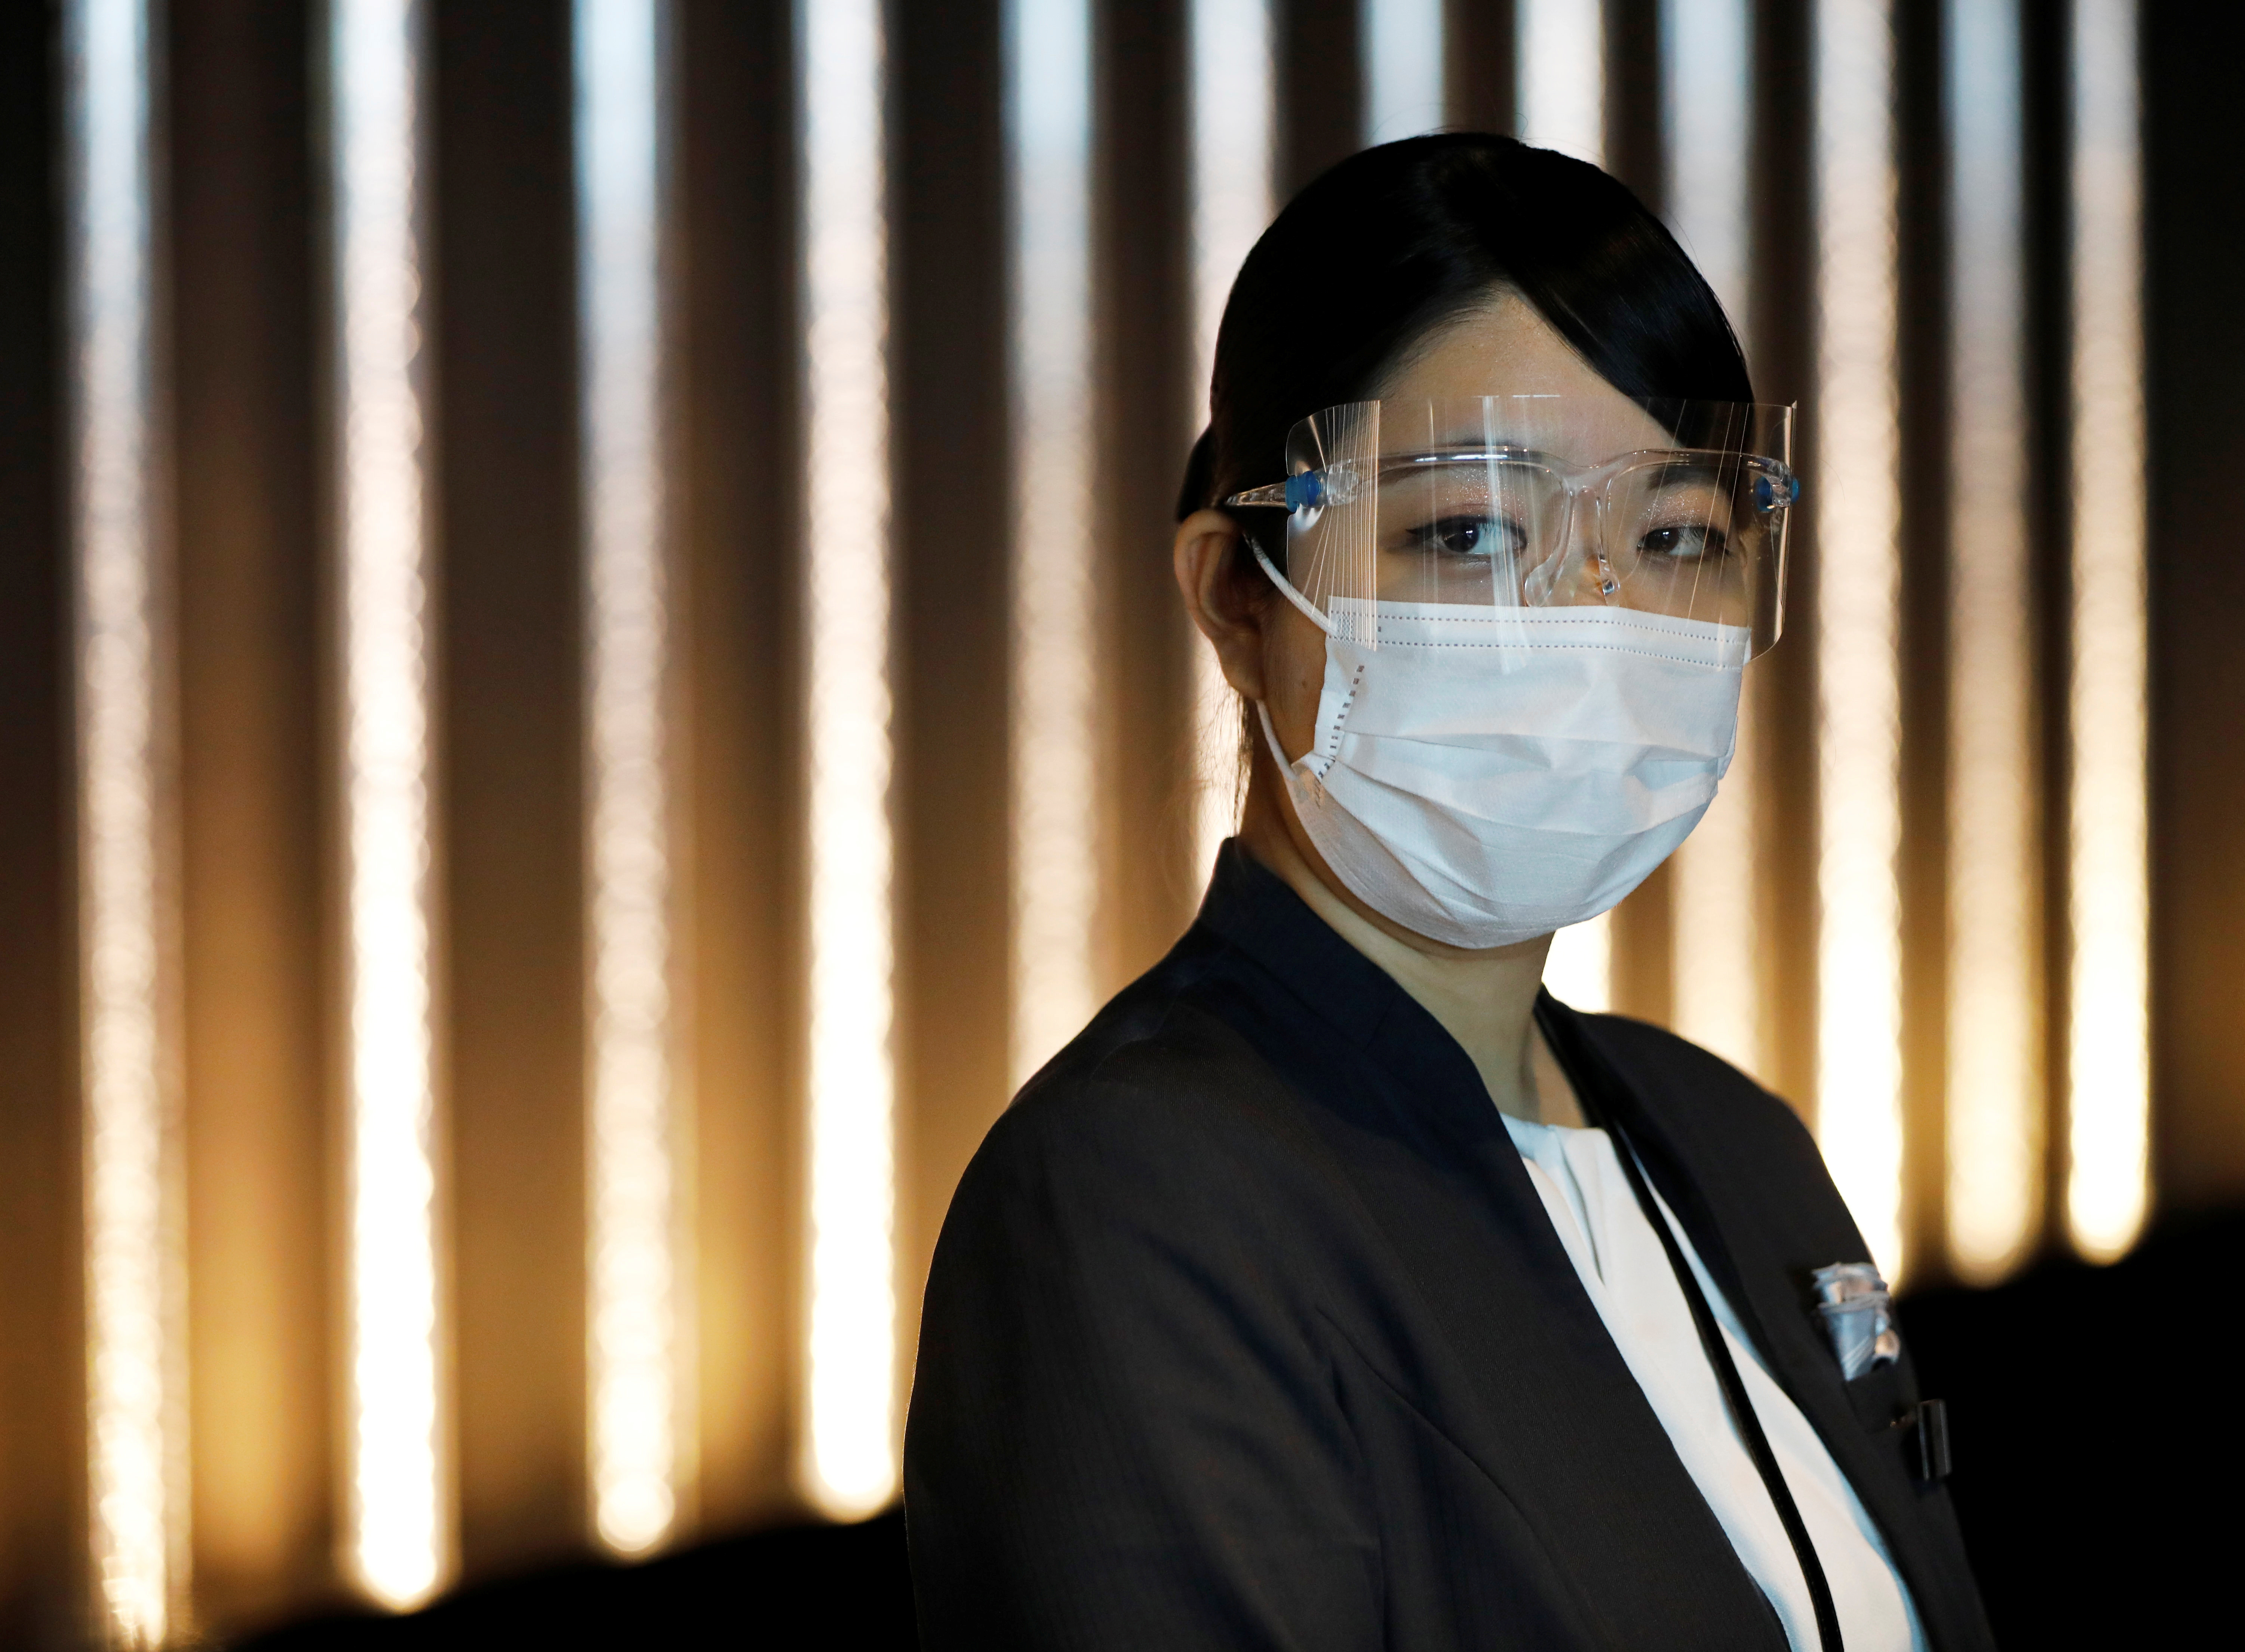 A hotel worker wears a protective mask and goggles at the reception desk of Mitsui Garden Hotel Nihonbashi Premier during the spread of the coronavirus disease (COVID-19) in Tokyo, Japan June 26, 2020.